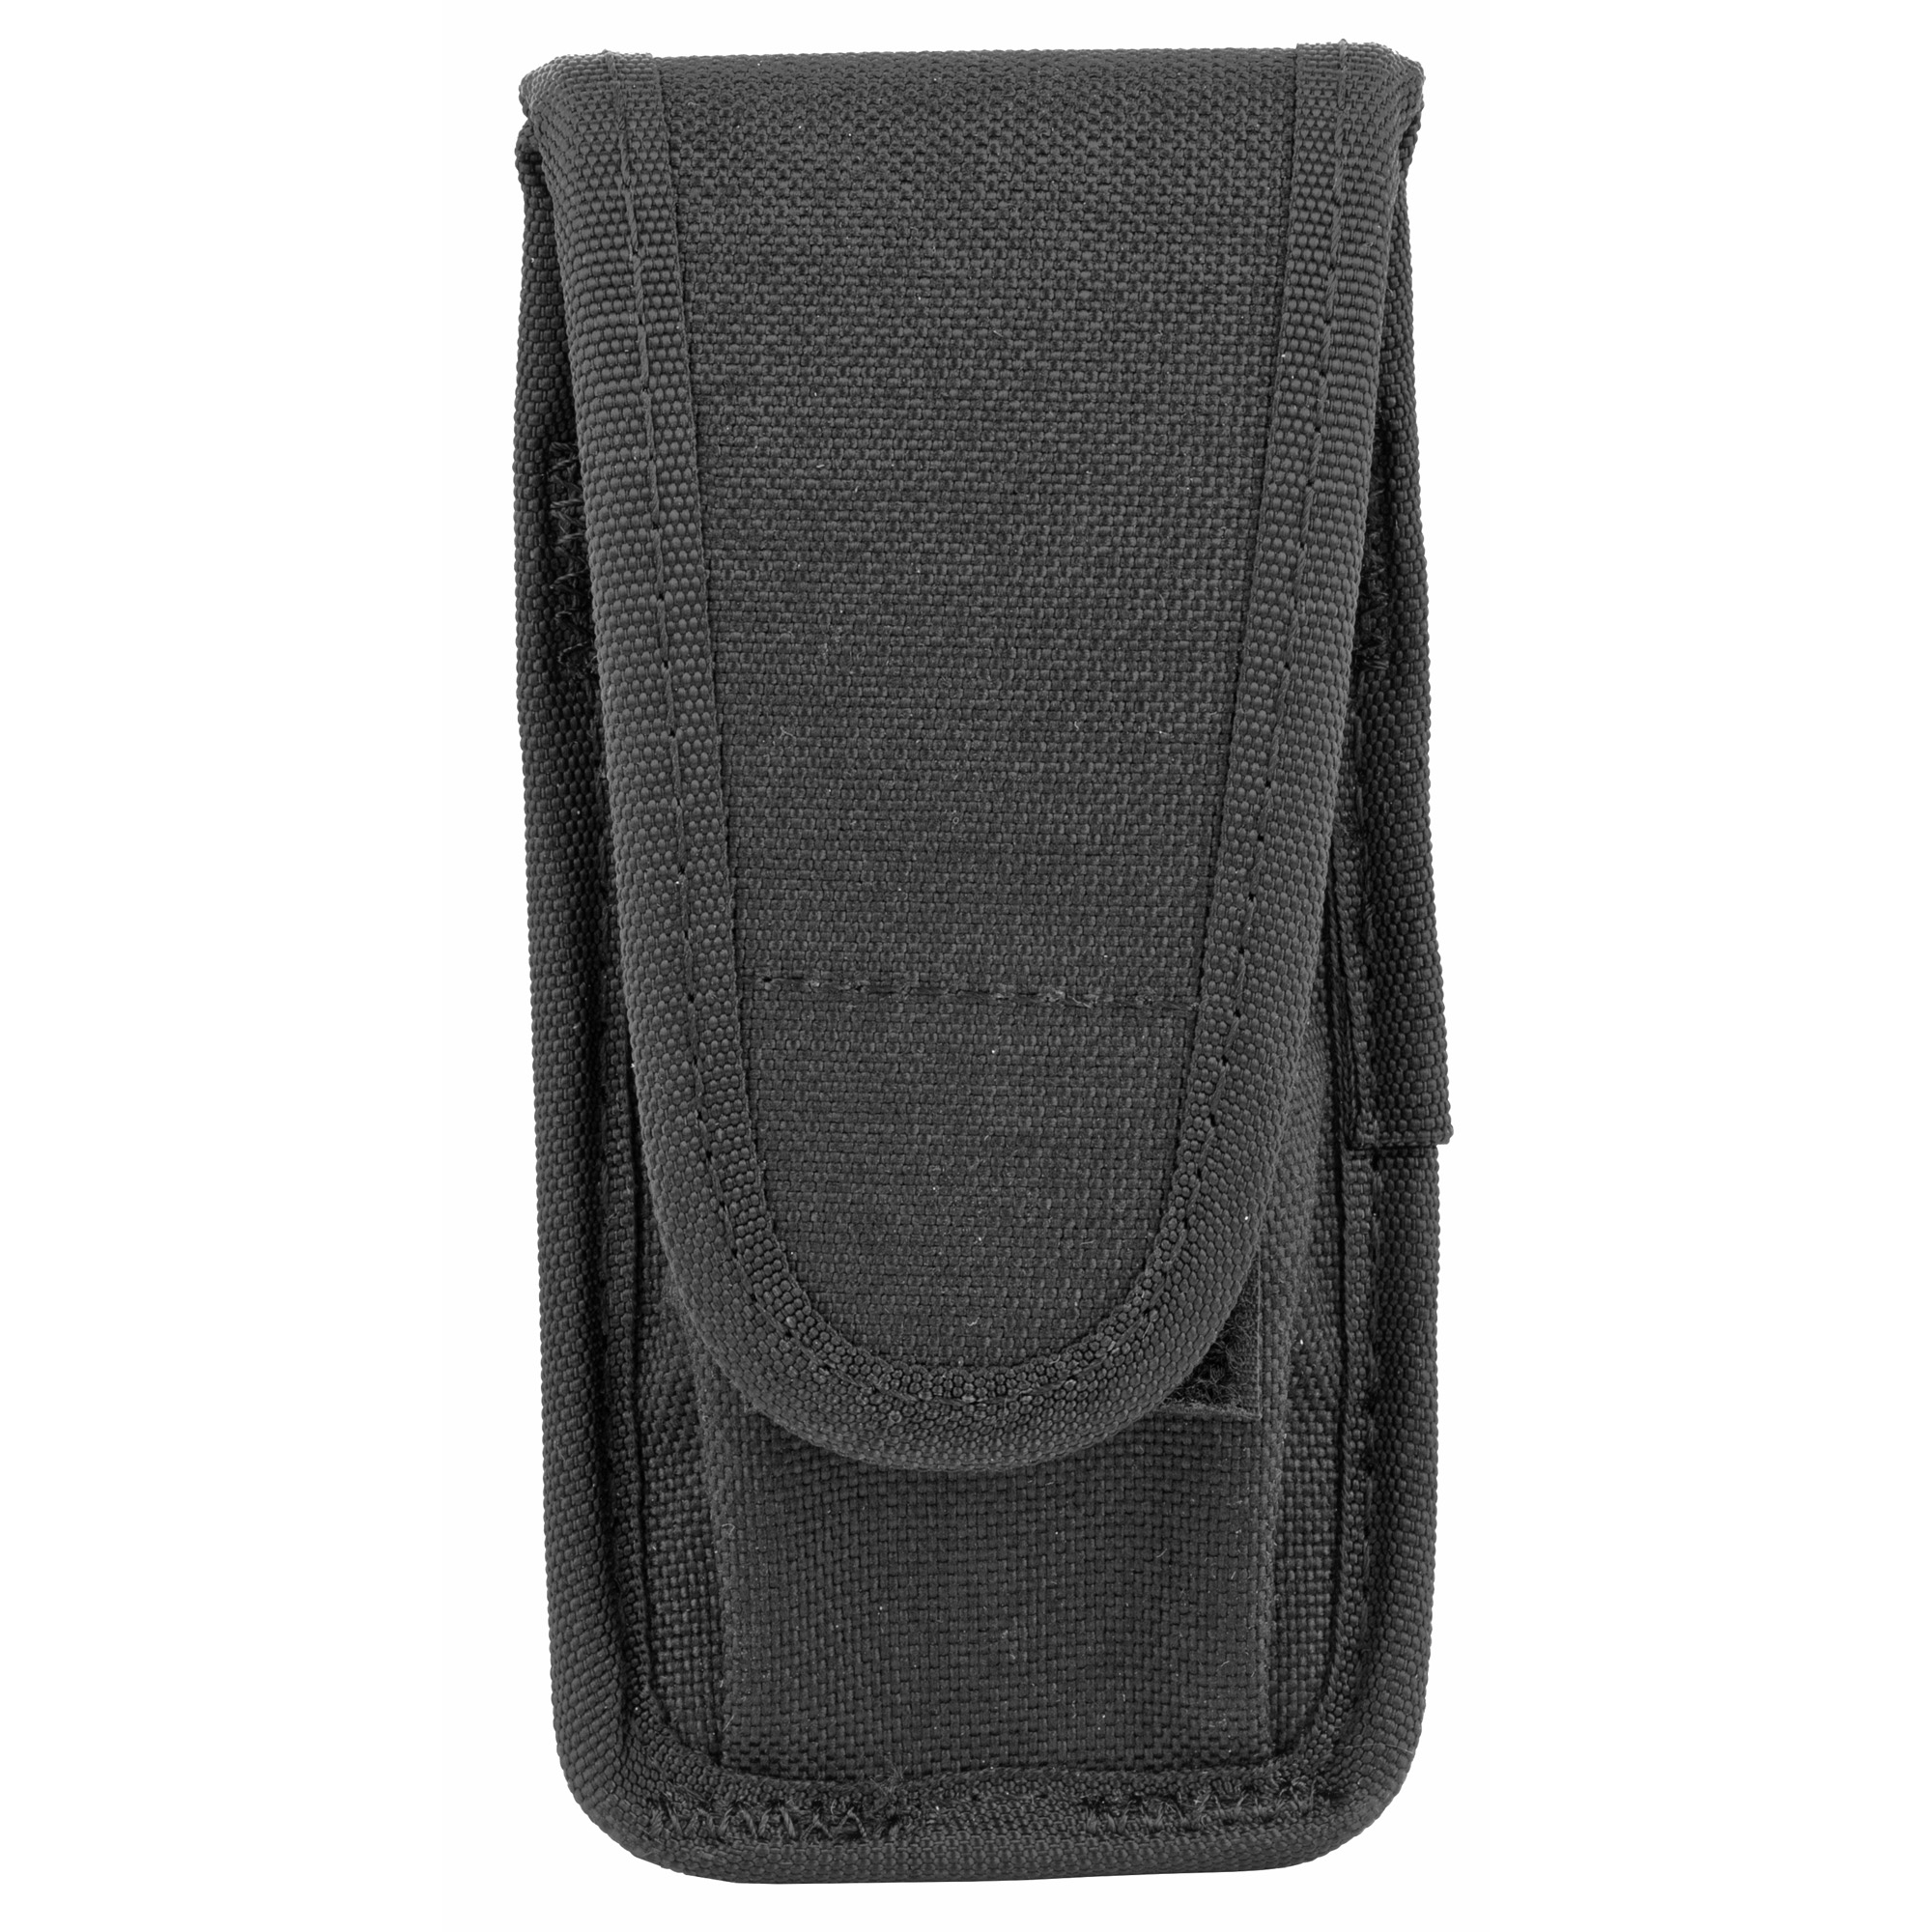 "This universal case will hold a single double stack magazine or a large folding knife. The hook and loop closure allows to adjust for the length of the magazine or knife"" and the rounded case edges won't catch on other duty belt gear. Fits most standard 9mm"" .40 S&W and .45 ACP magazines"